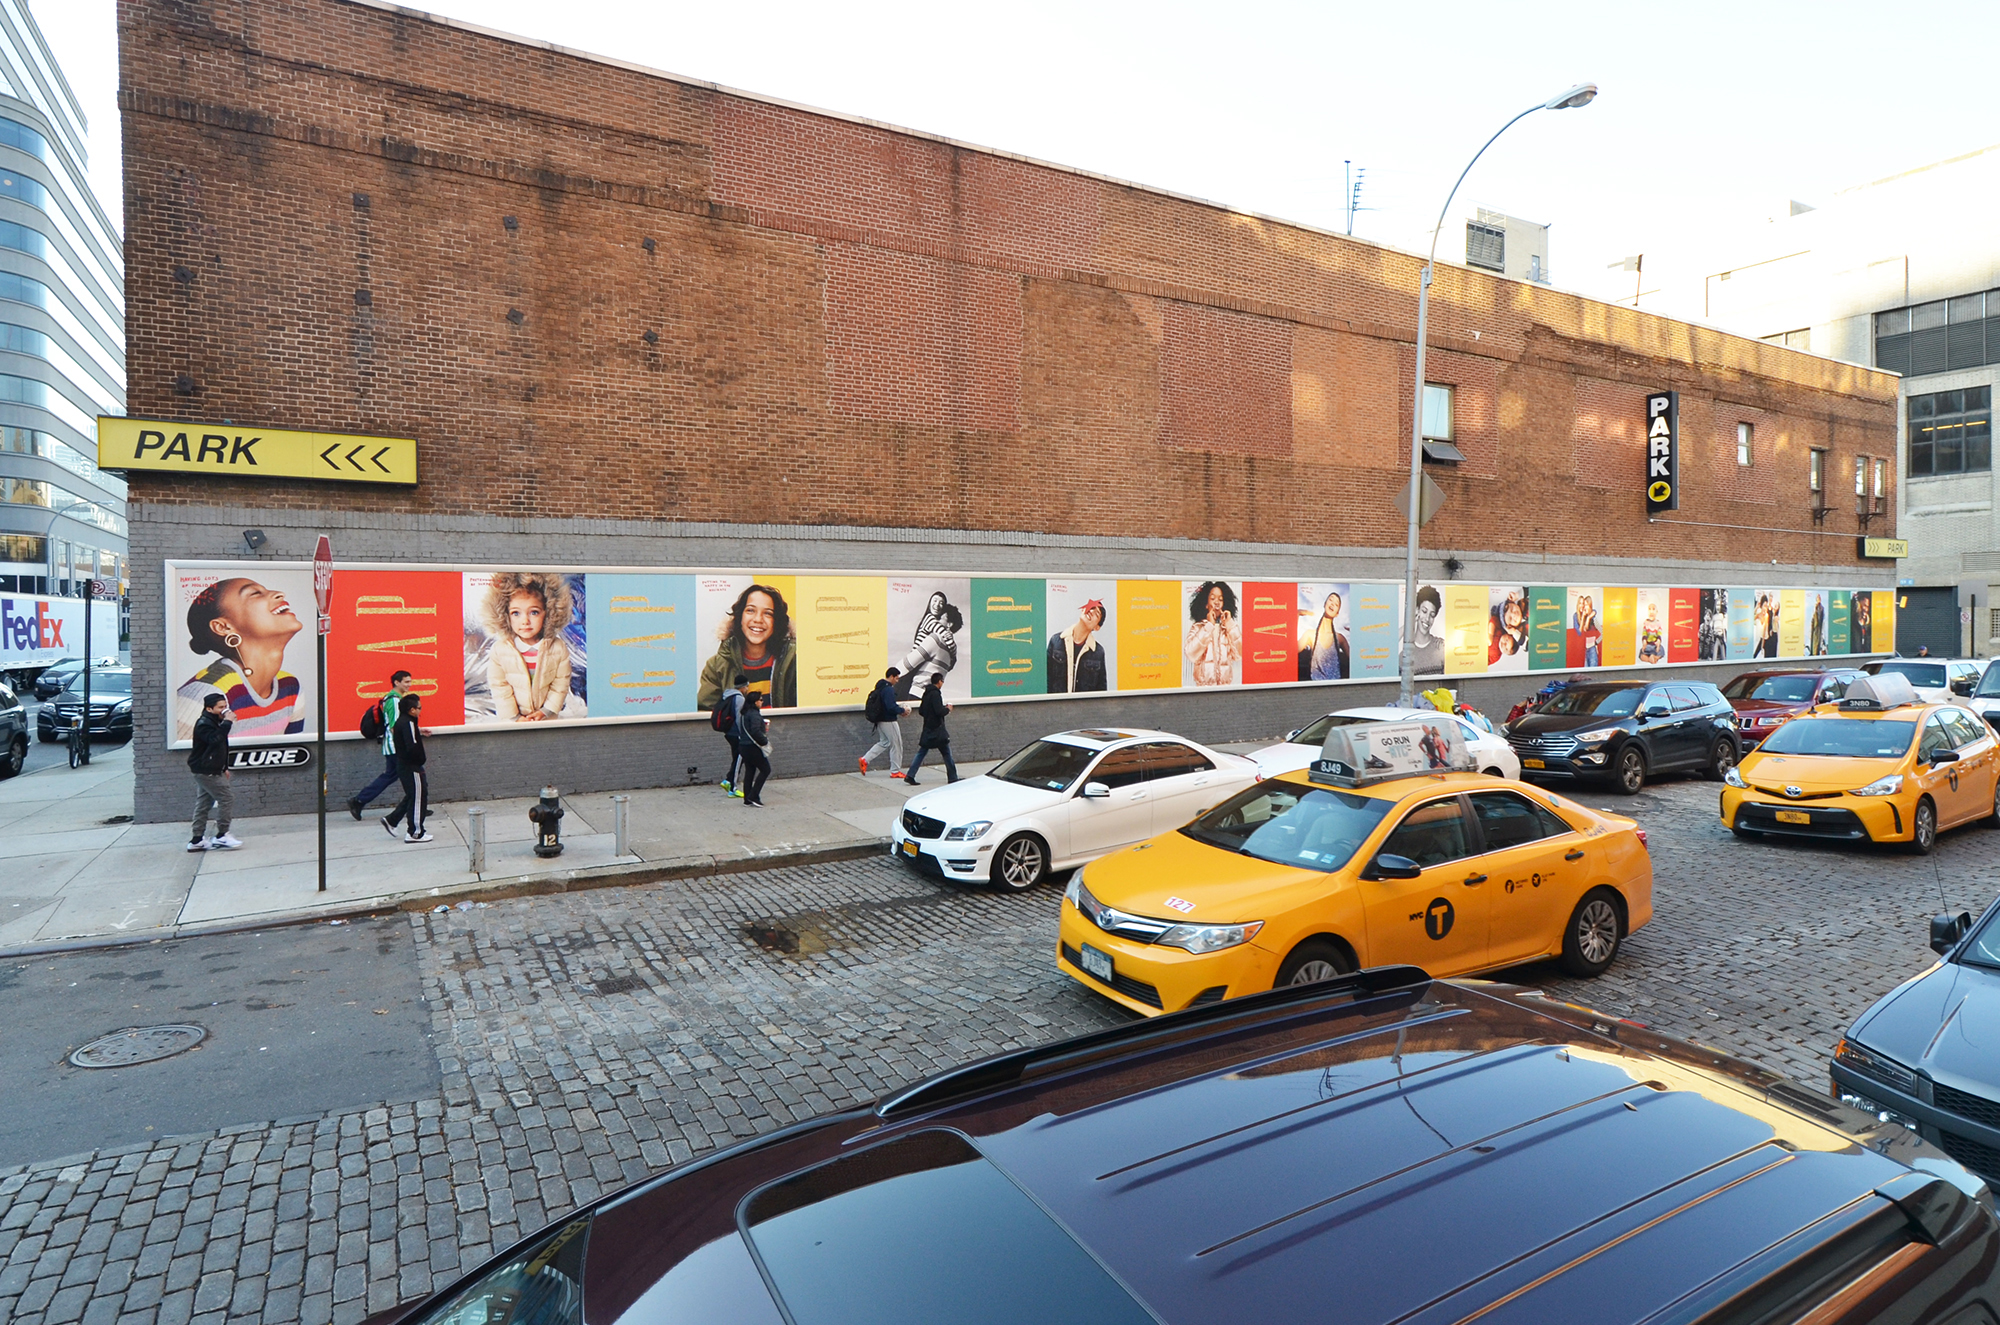 NY141 - Clarkson St from Greenwich St to Washington St.jpg